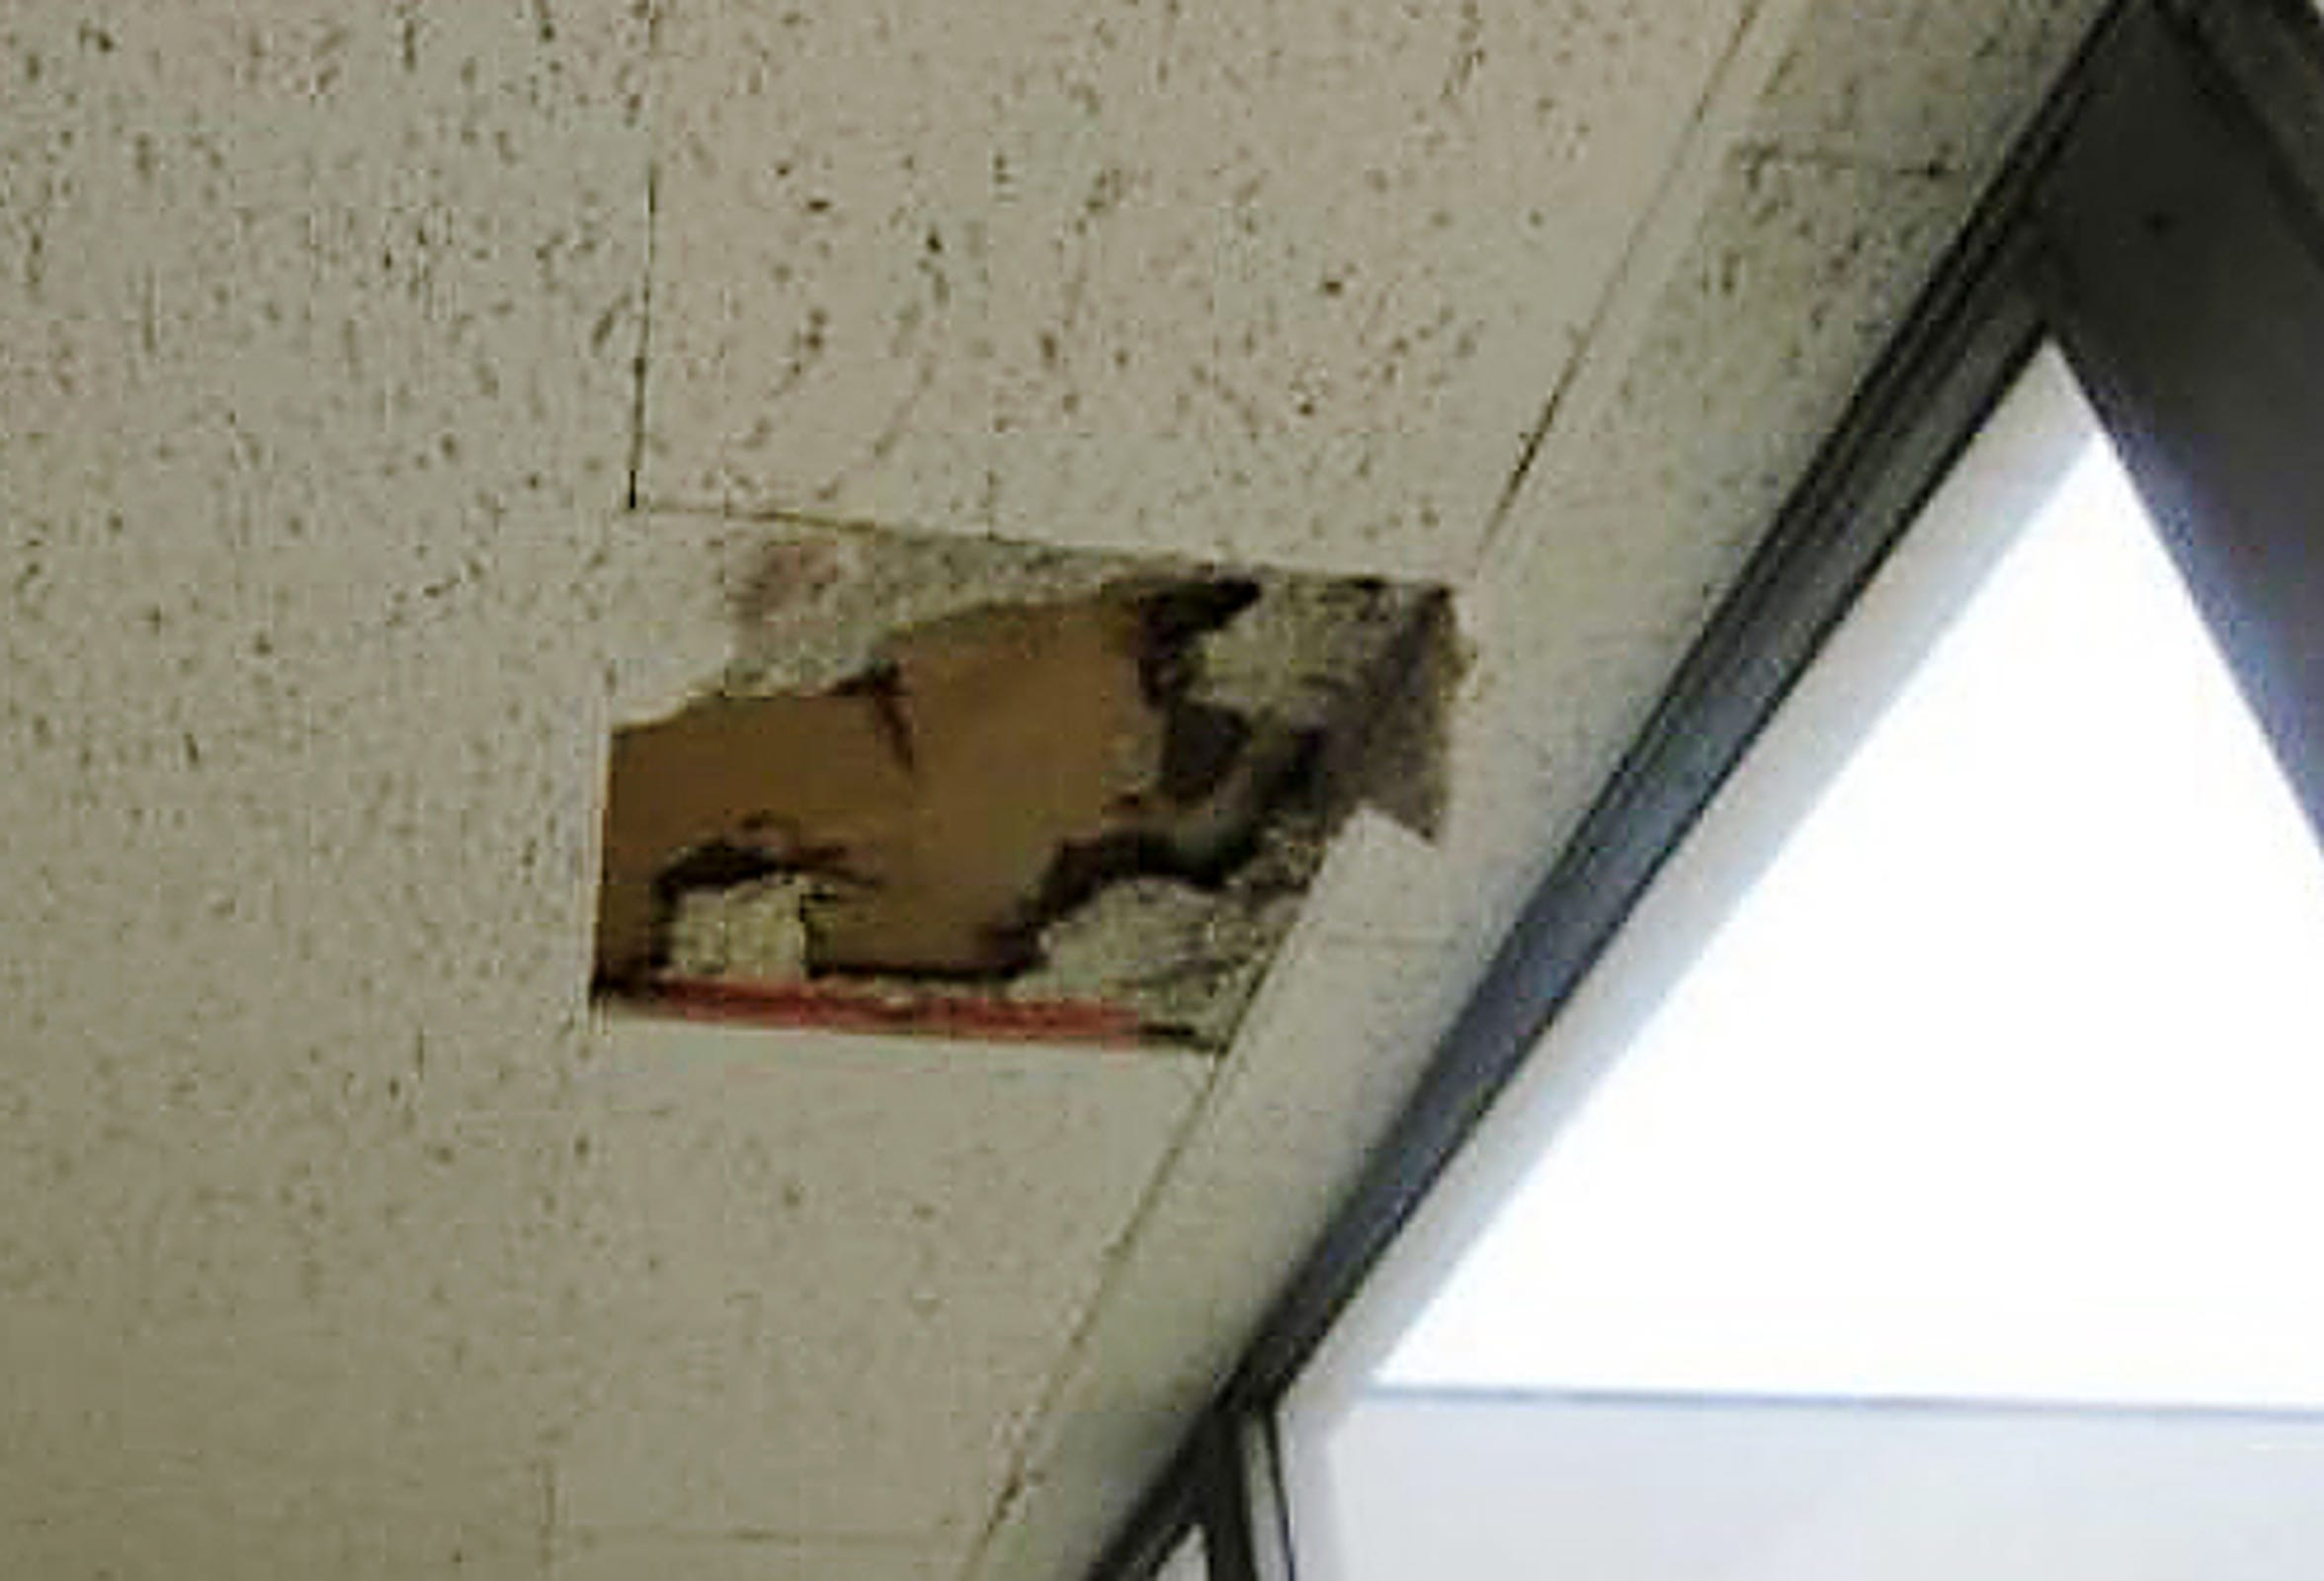 At Moses Field Center, acoustic tiles are damaged from leaks and the gypsum ceiling in several classrooms showed damages from the leak, according to a 2018 report on school facilities. The school needs $1,143,630 in interior repairs.